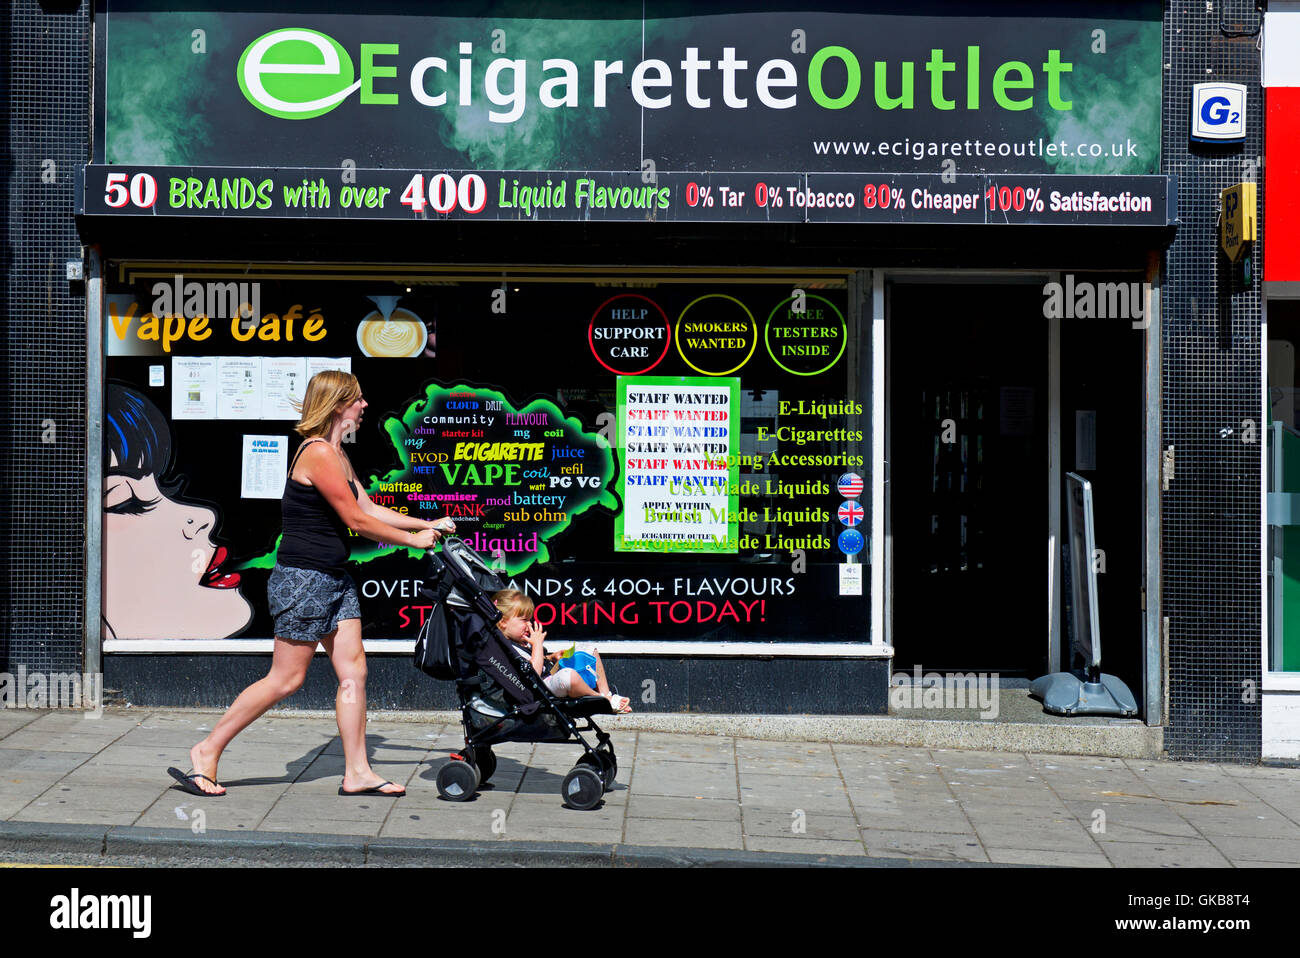 Woman with pushchair walking past Ecigarette outlet shop, England UK - Stock Image